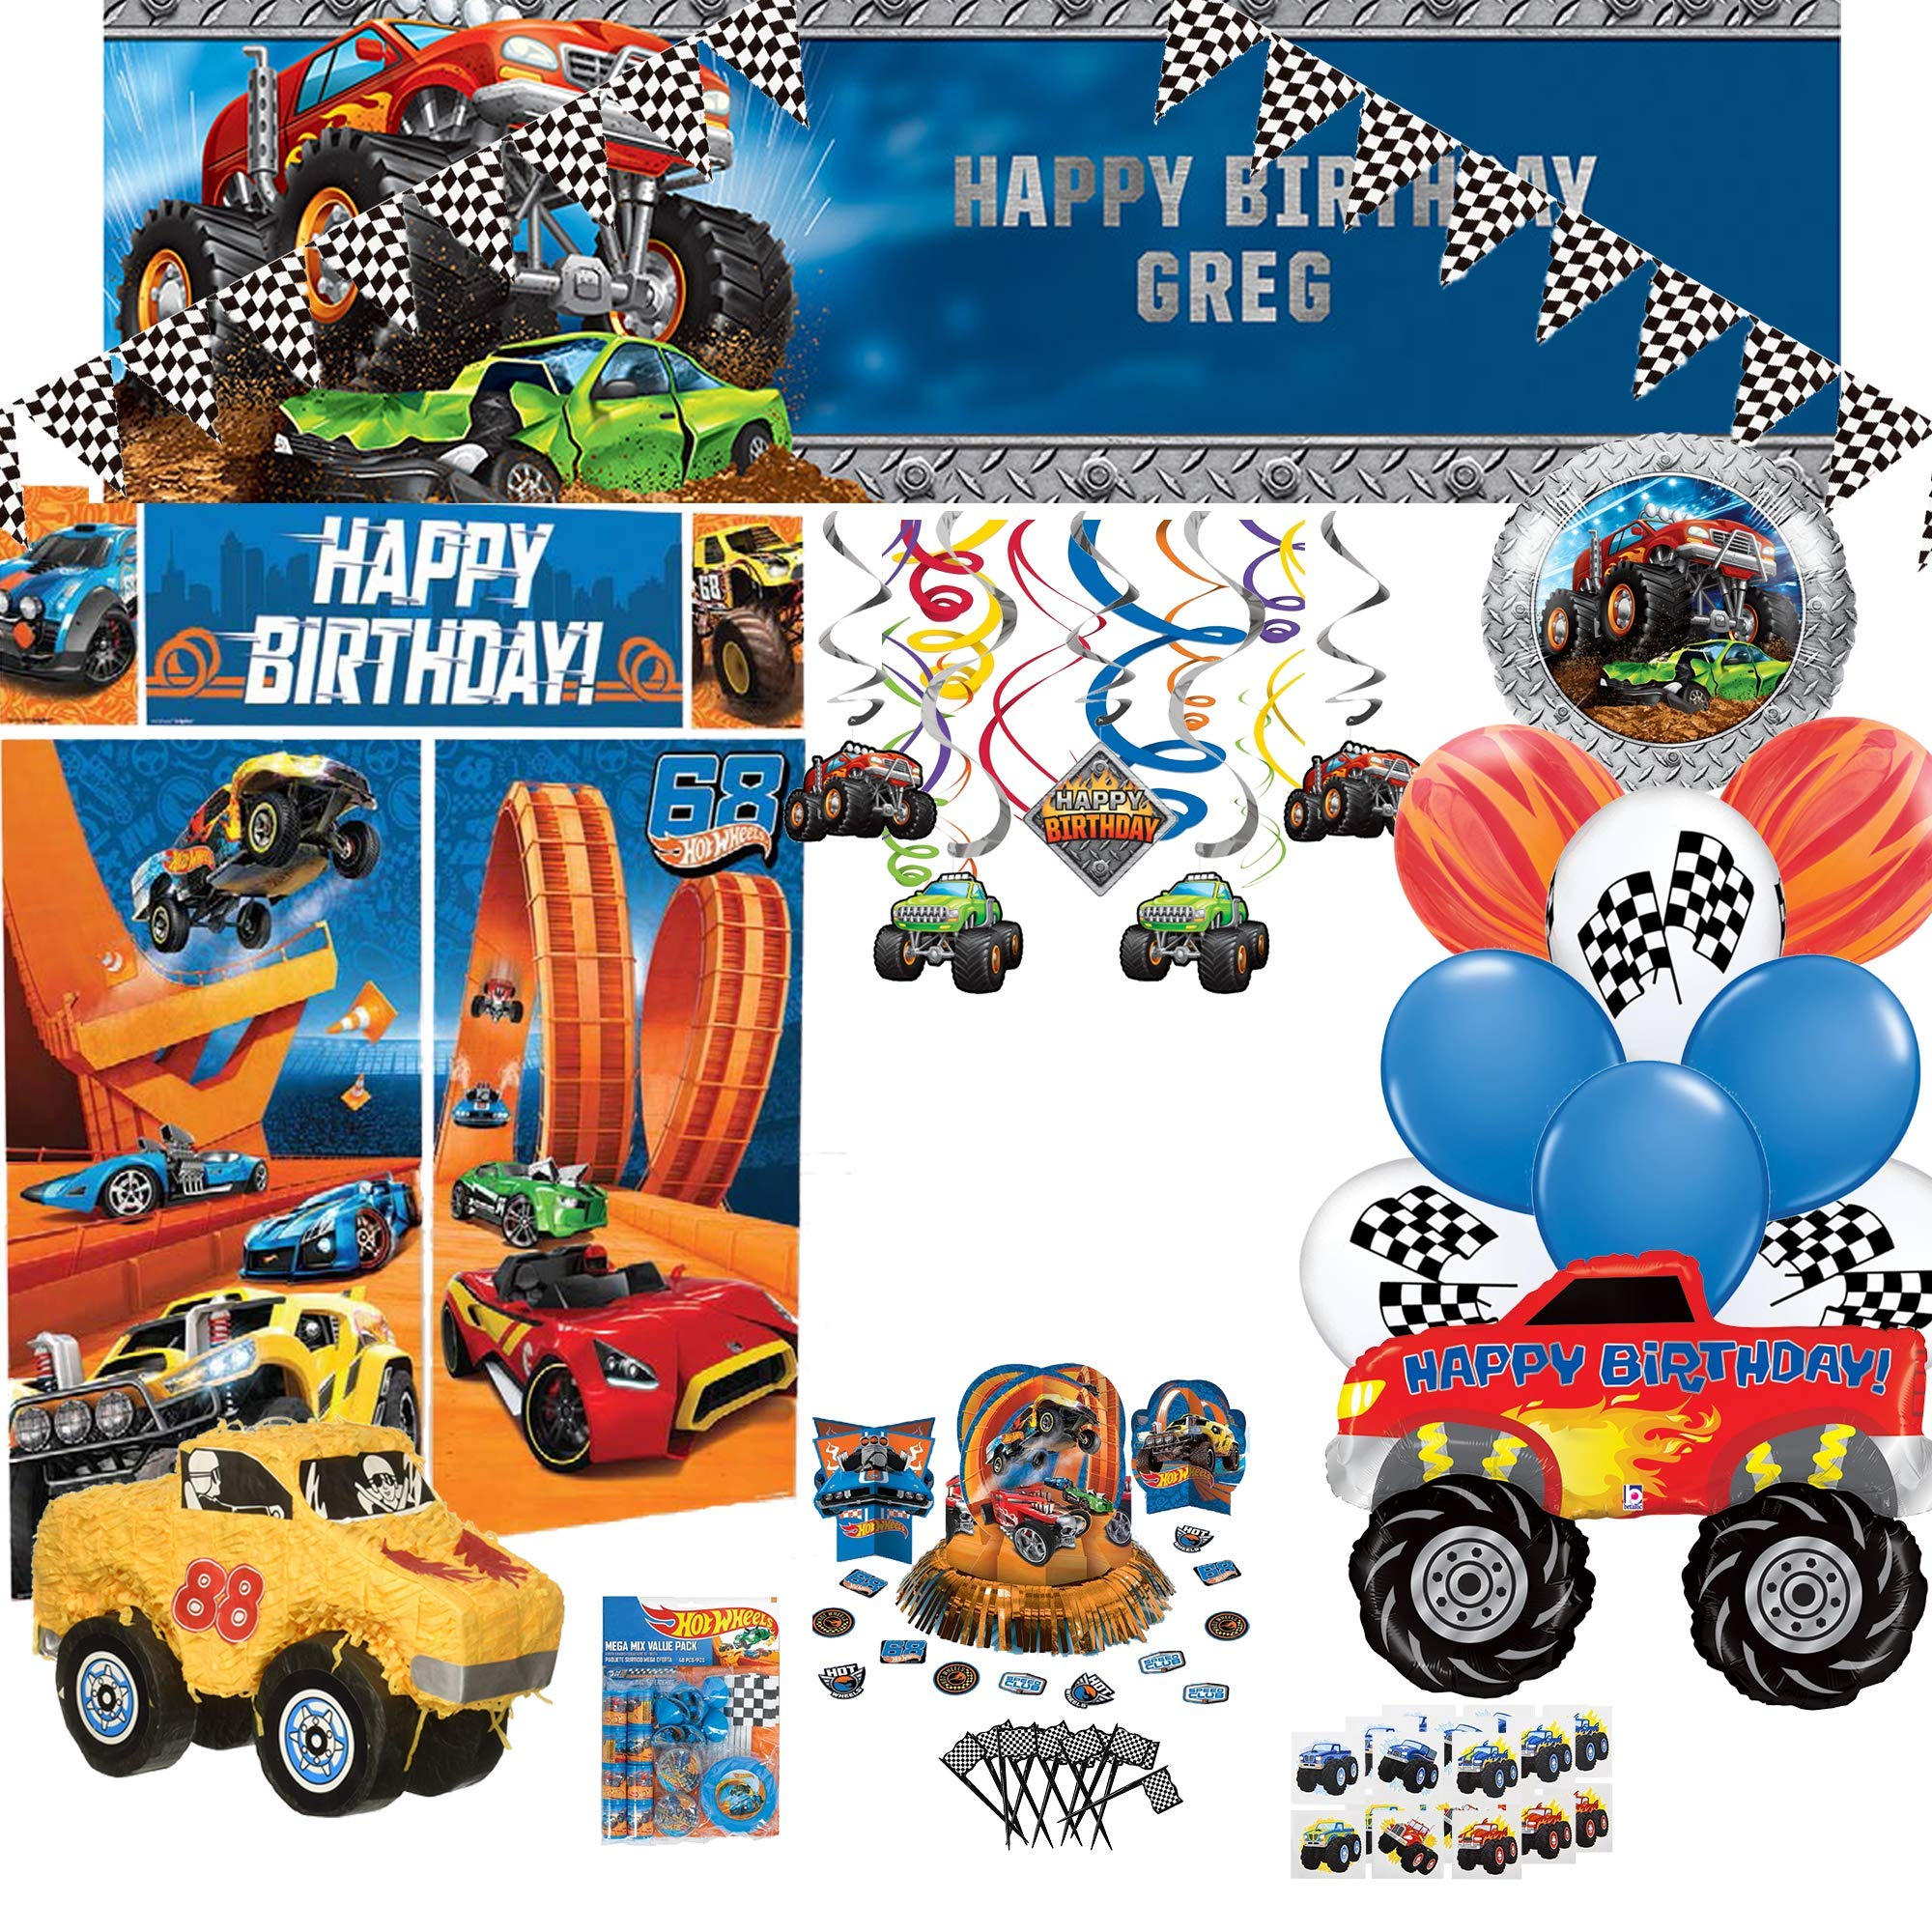 Monster Truck Pinata and Hot Wheels Birthday Party Decoration Pack with Balloons, Favors, eBook|S2